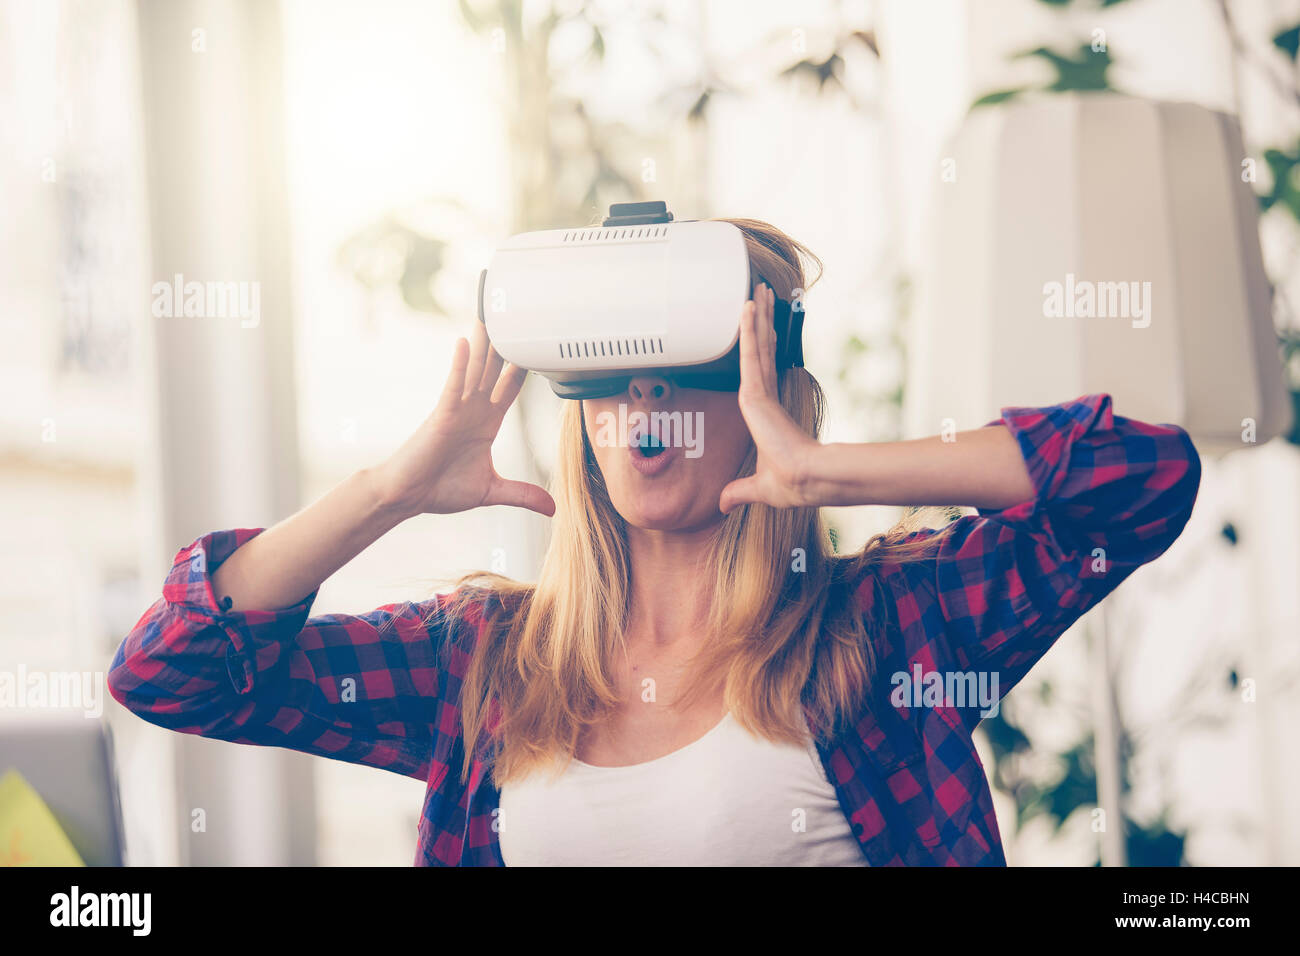 Amazed woman looking in a VR goggles and gesturing - Stock Image